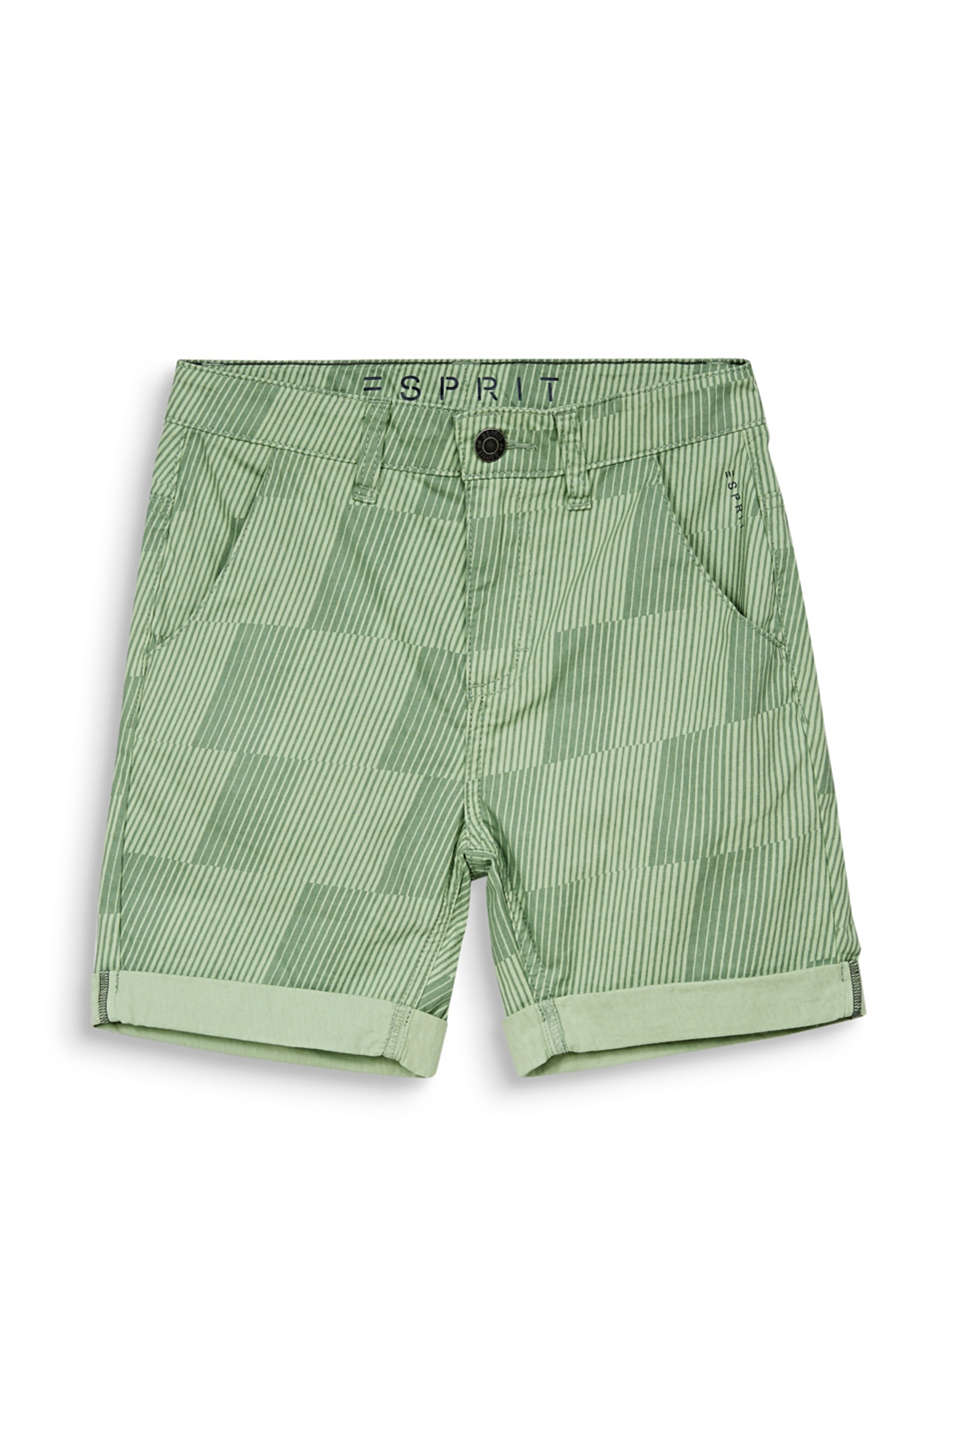 Shorts with a geometric print, 100% cotton, LCPASTEL GREEN, detail image number 3